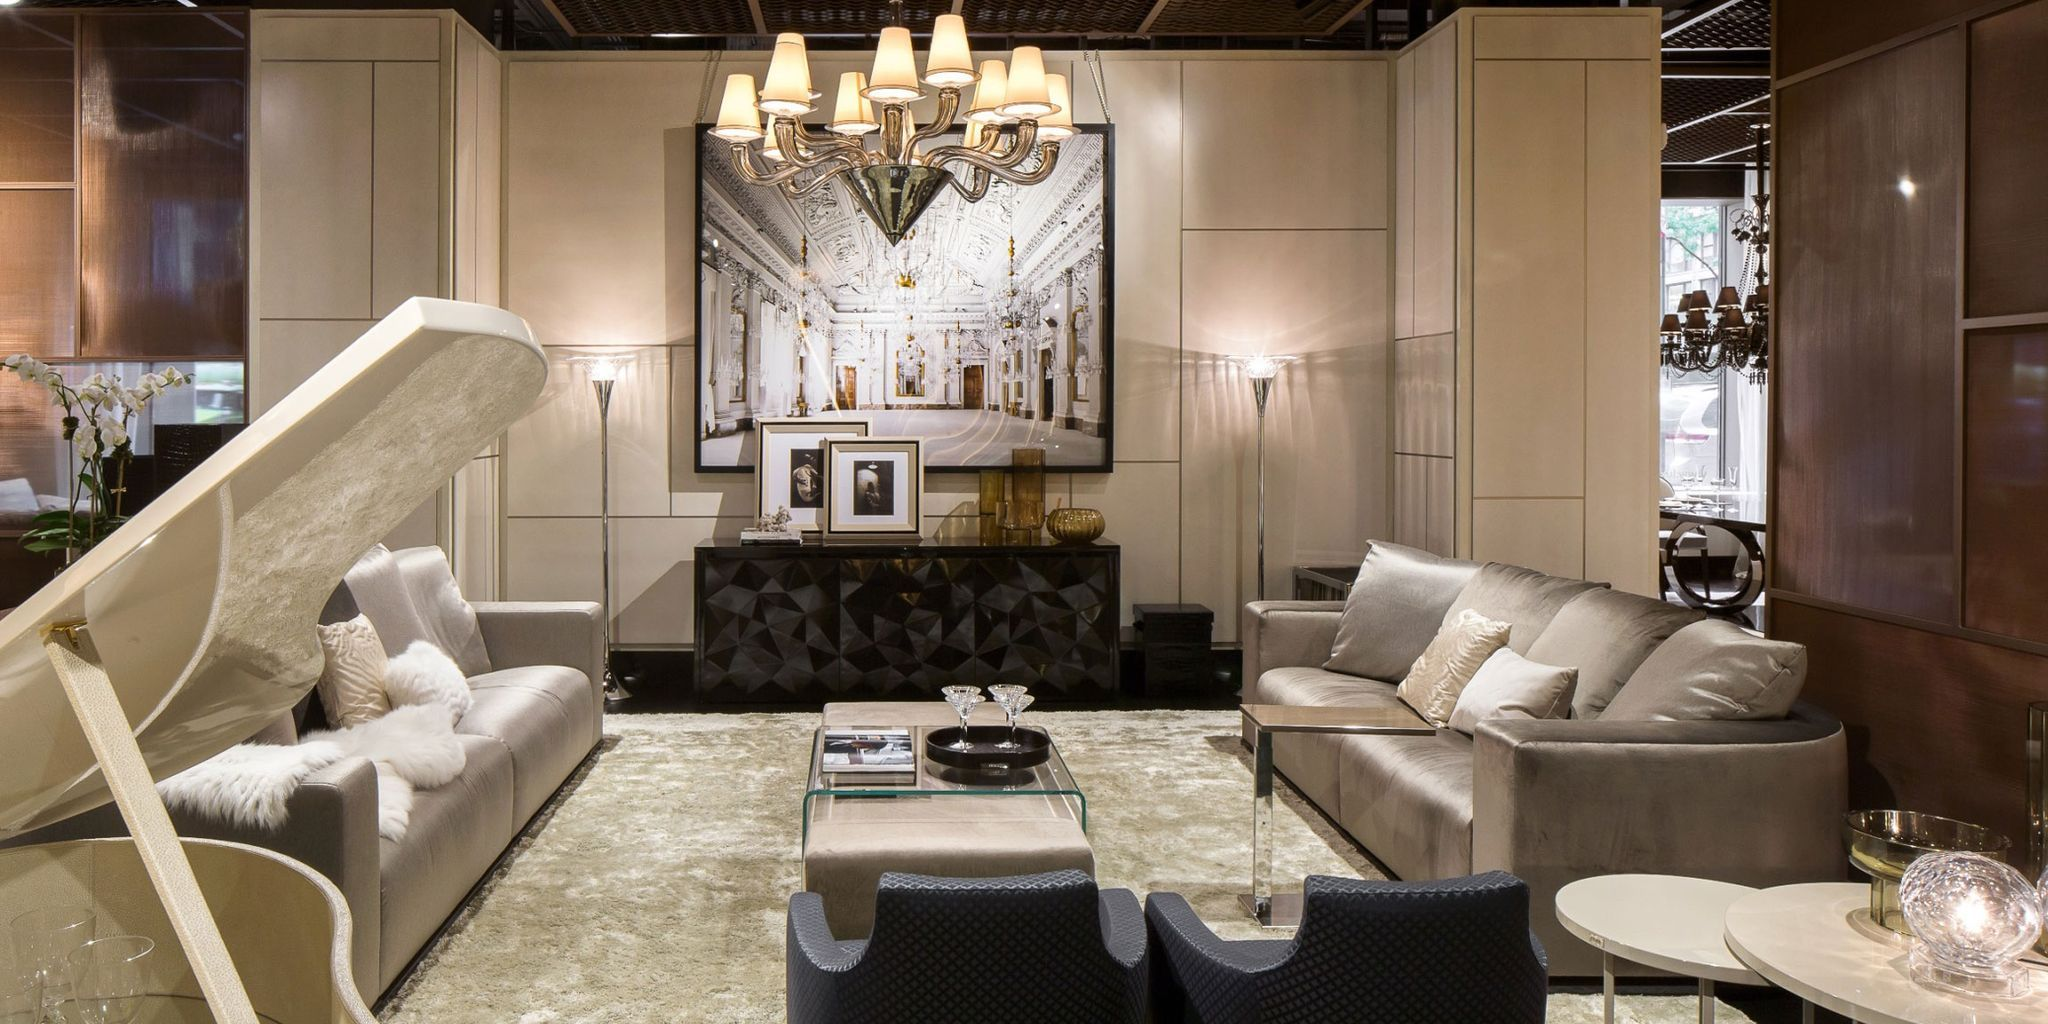 Luxury Living Opens Its First Showroom In New York City.